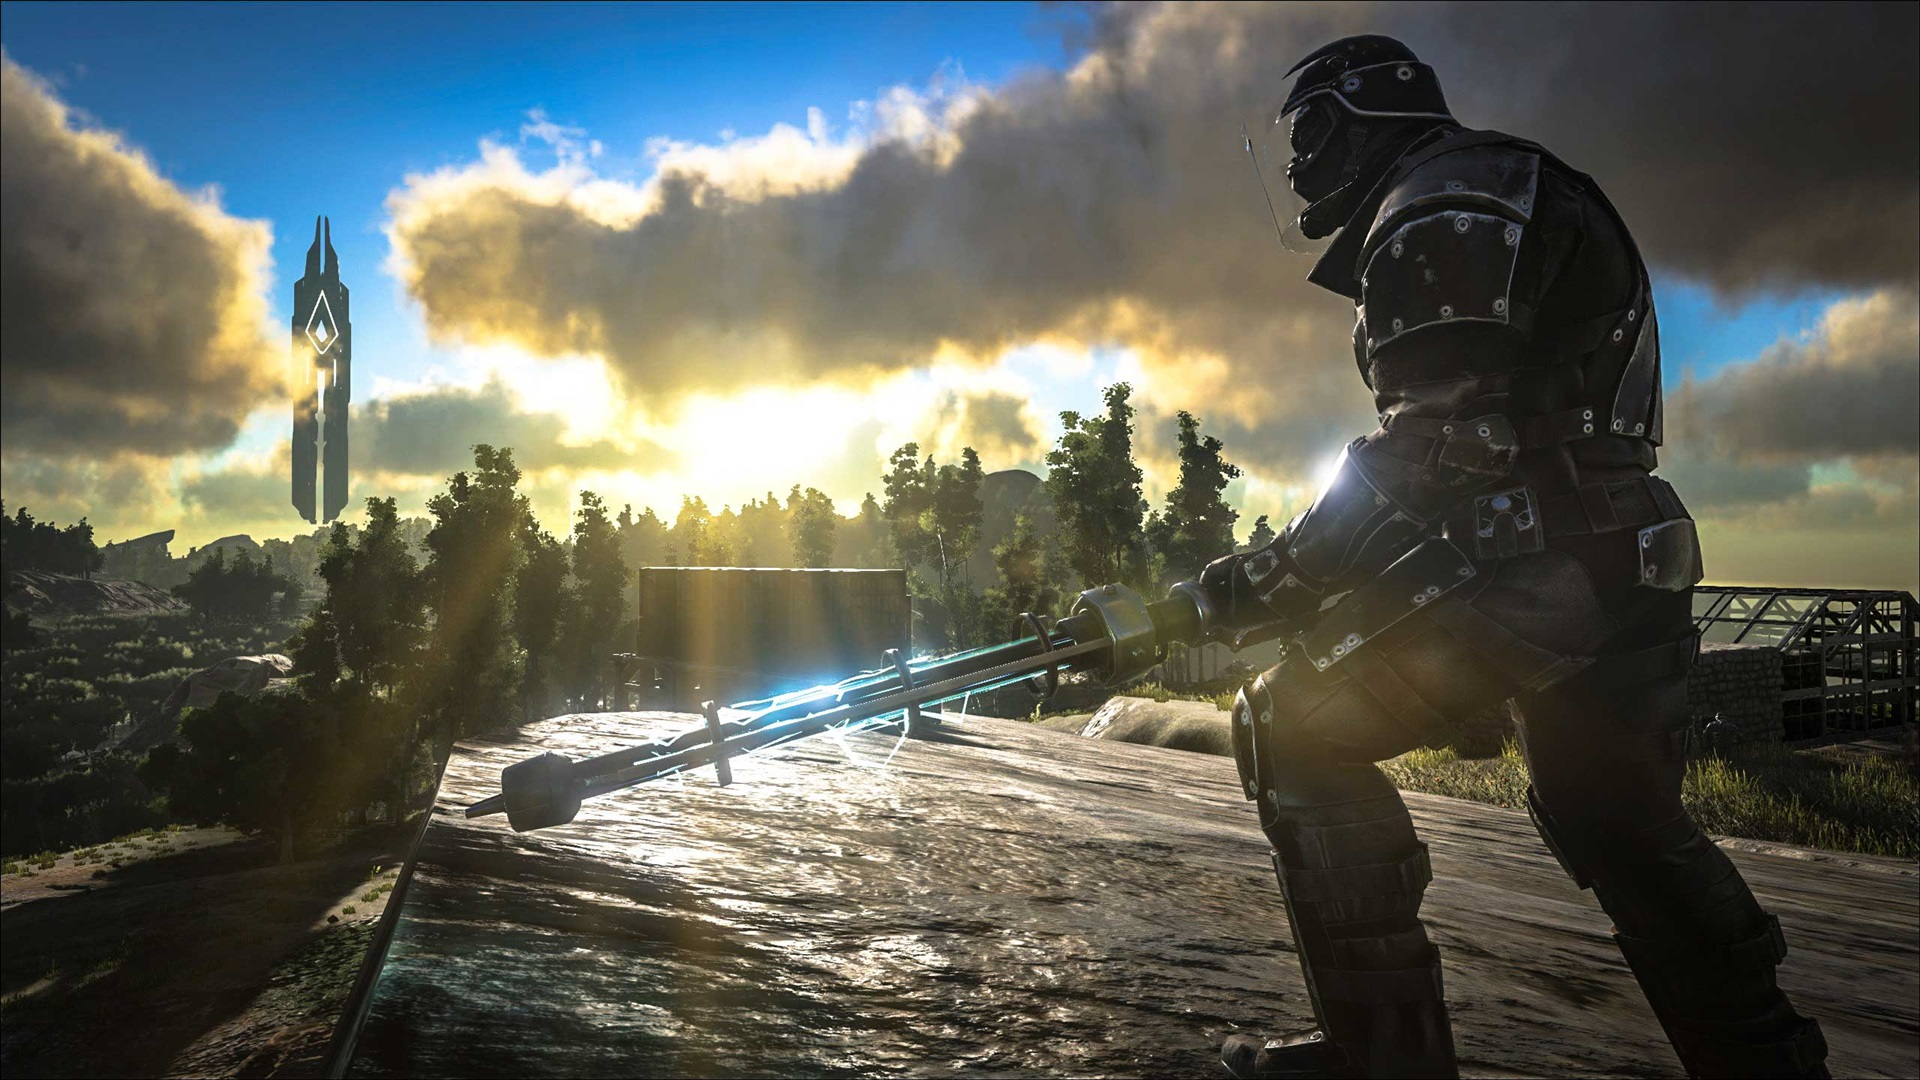 Wallpaper Ark Survival Evolved Soldier 2560x1440 Qhd Picture Image